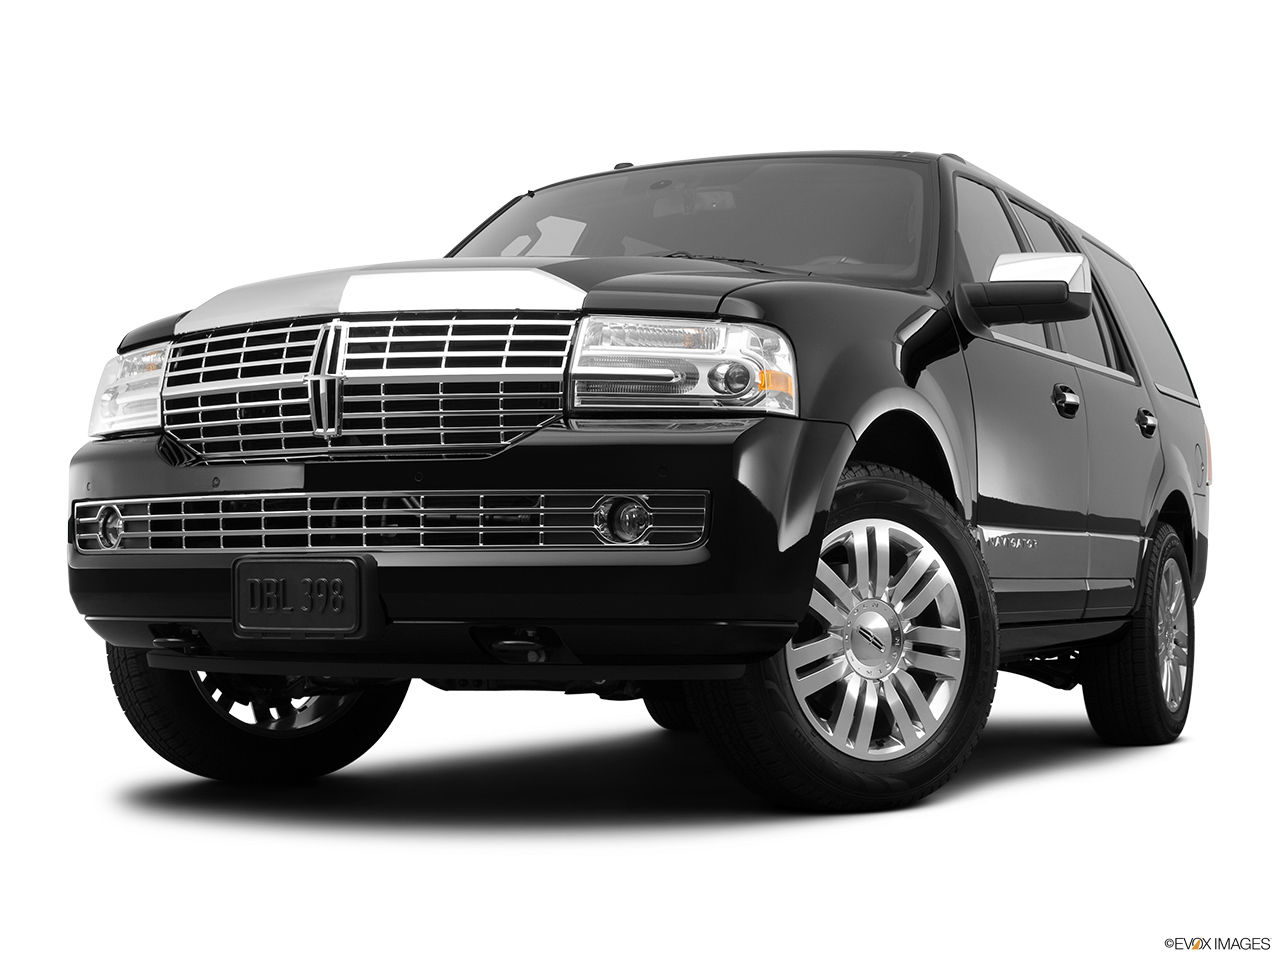 2012 Lincoln Navigator Base Front angle view, low wide perspective.